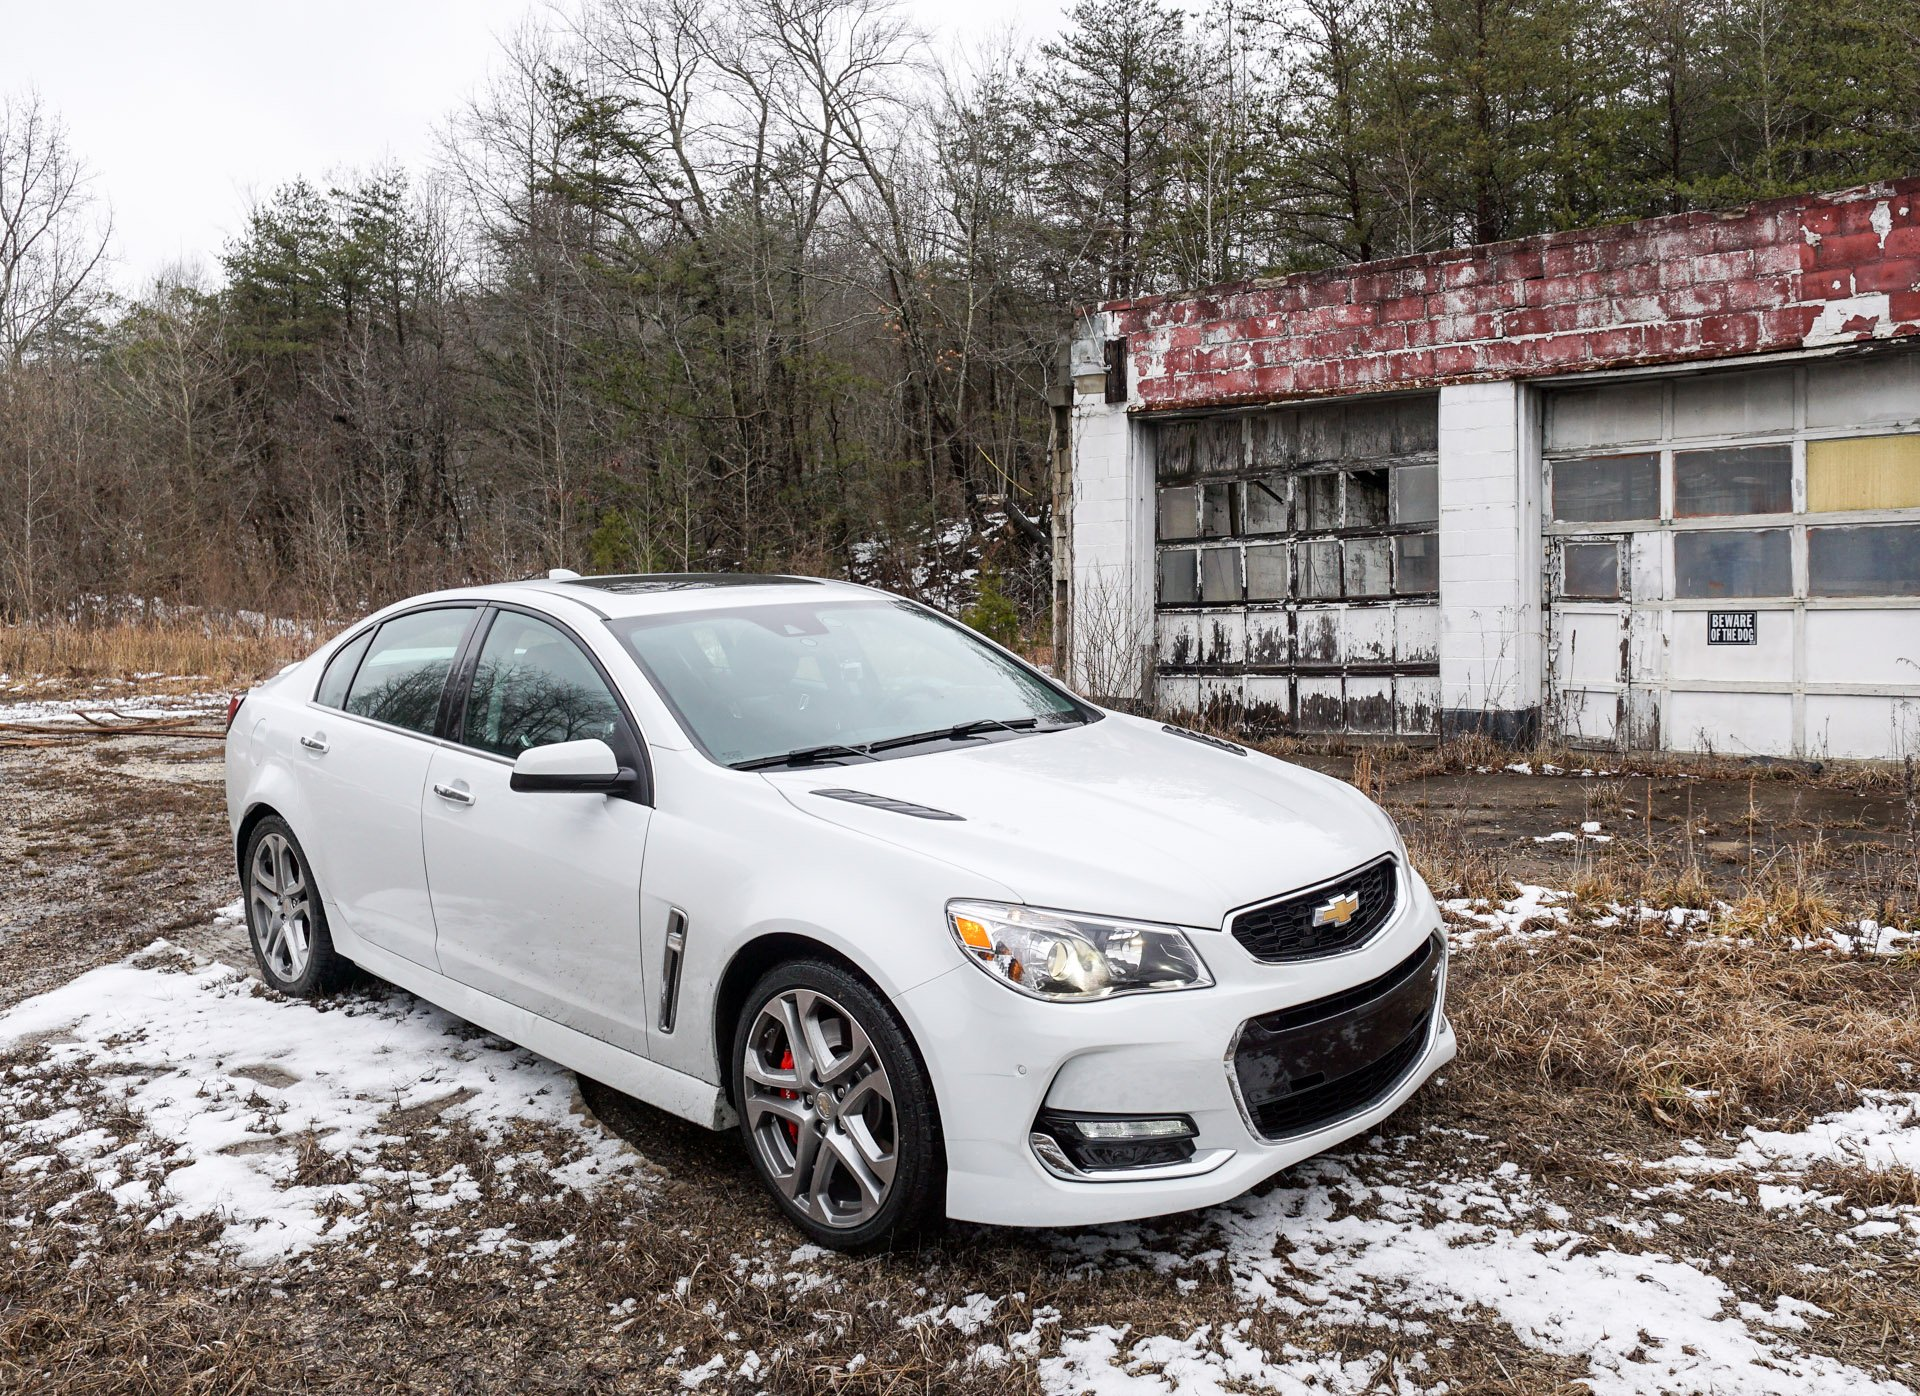 We Road Tripped to the Daytona 500 in a 2016 Chevy SS